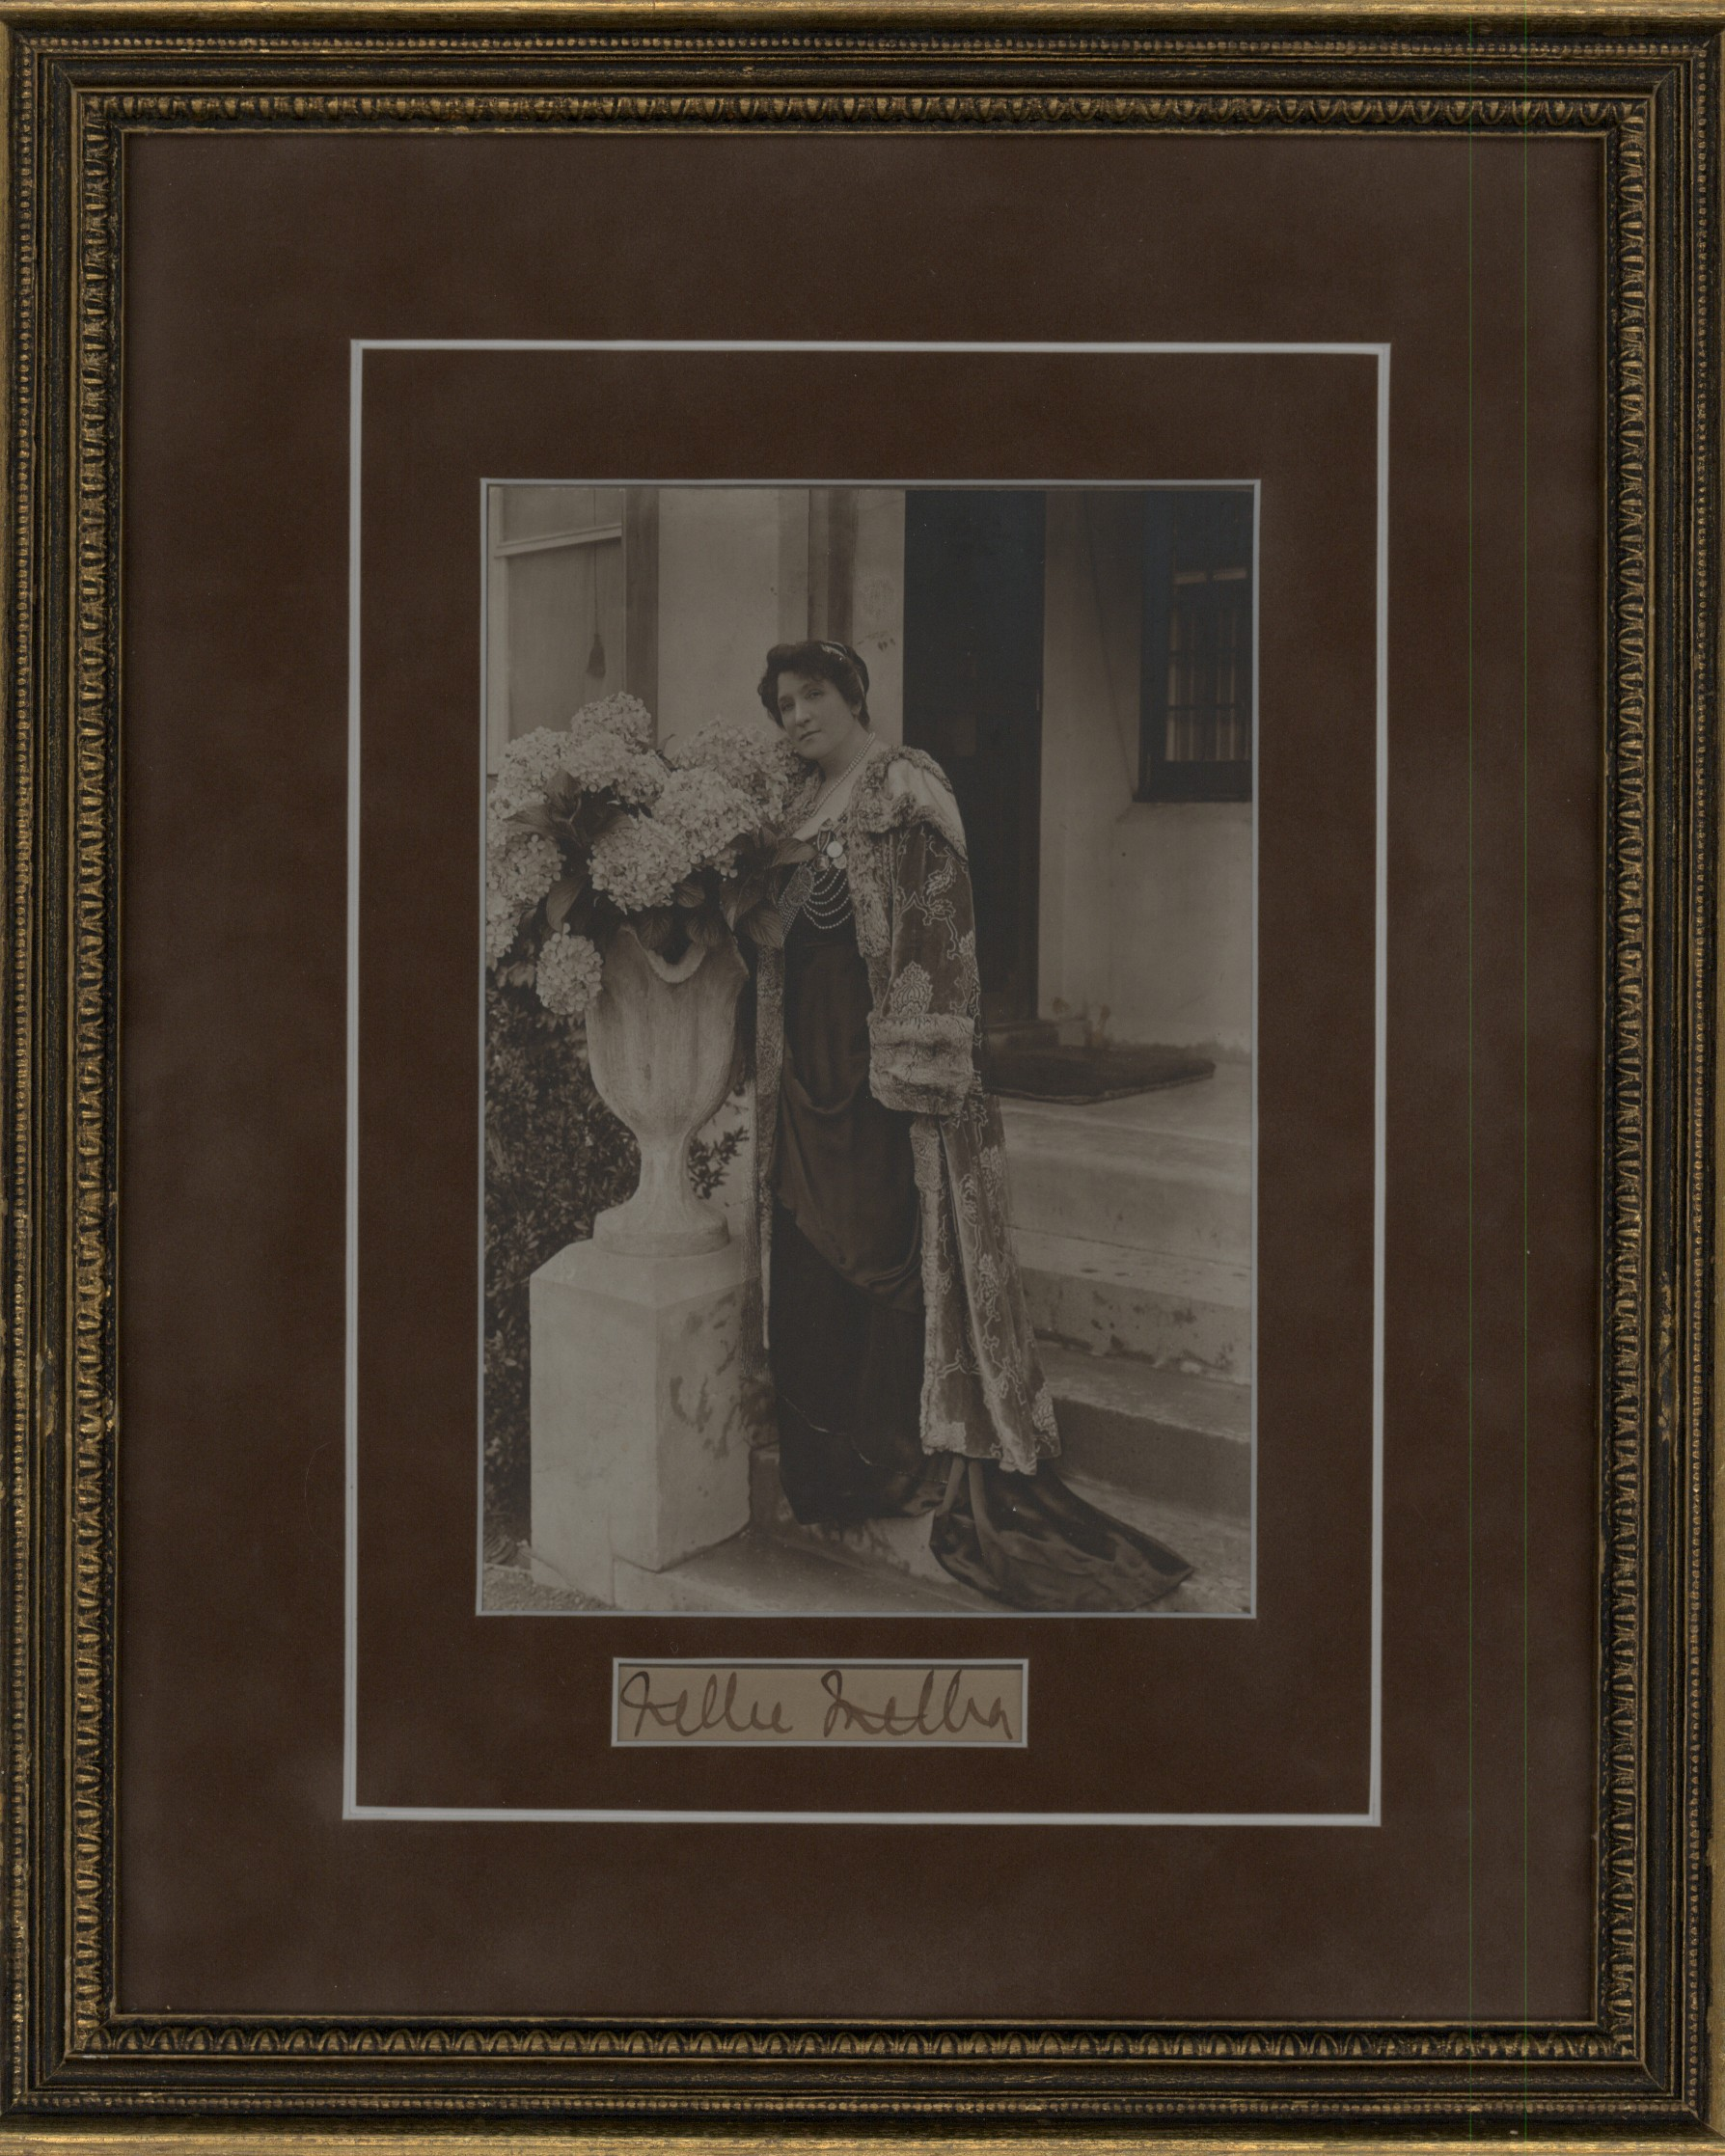 Melba, Nellie - Ensemble Photograph And Signature. - (1403)